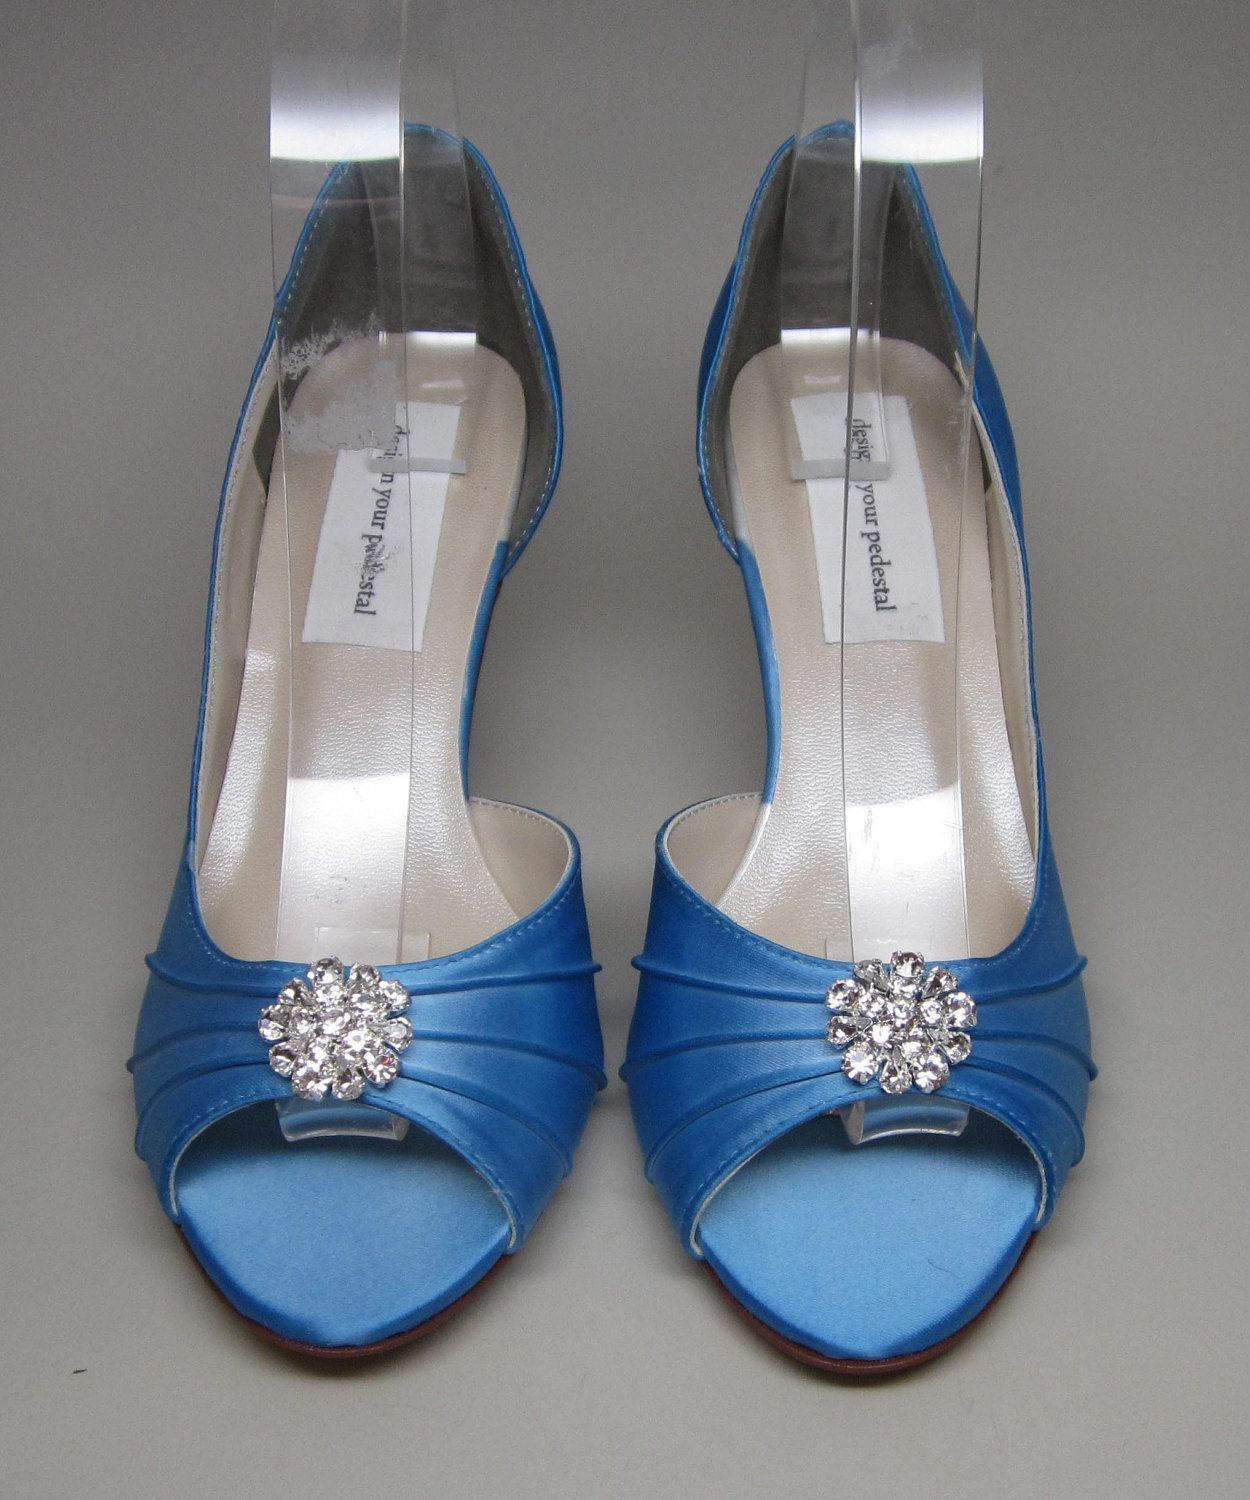 Sale Blue Wedding Shoes Cornflower Blue Kitten Heels With